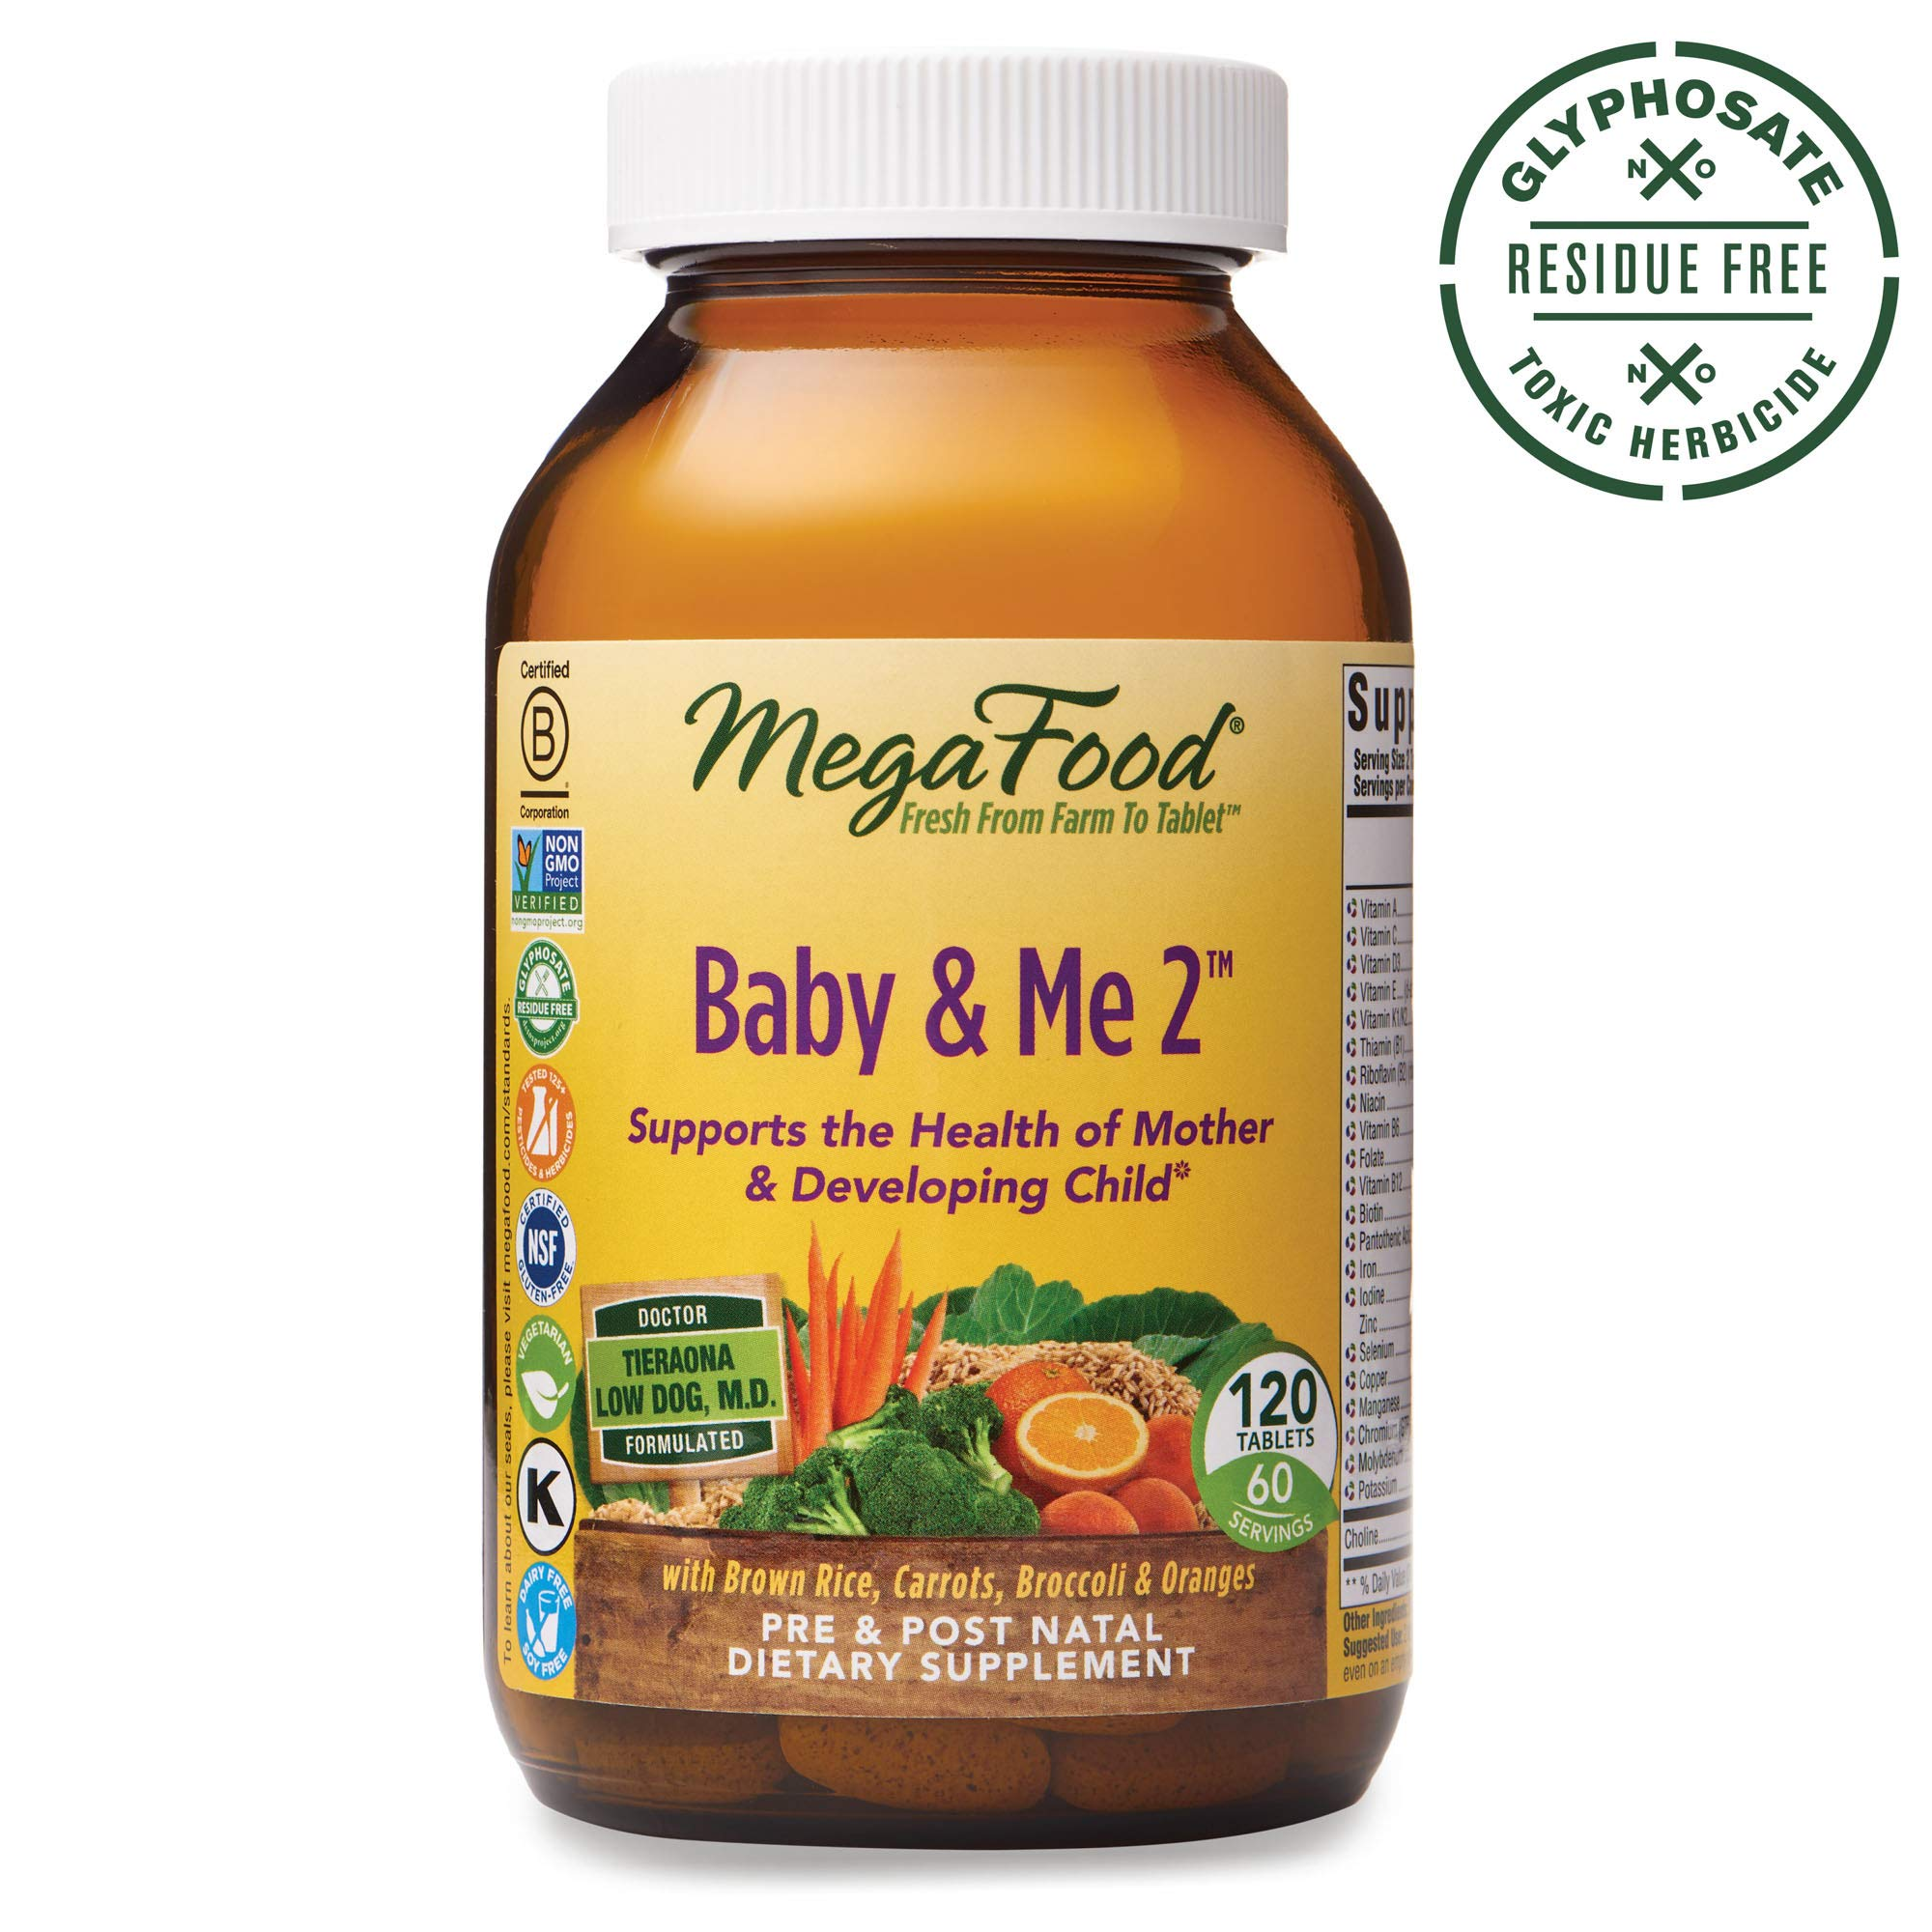 MegaFood, Baby & Me 2, Prenatal and Postnatal Vitamin, Dietary Supplement with Iron, Folate and Choline, Gluten-Free, Vegetarian, 120 Tablets (60 Servings) by MegaFood